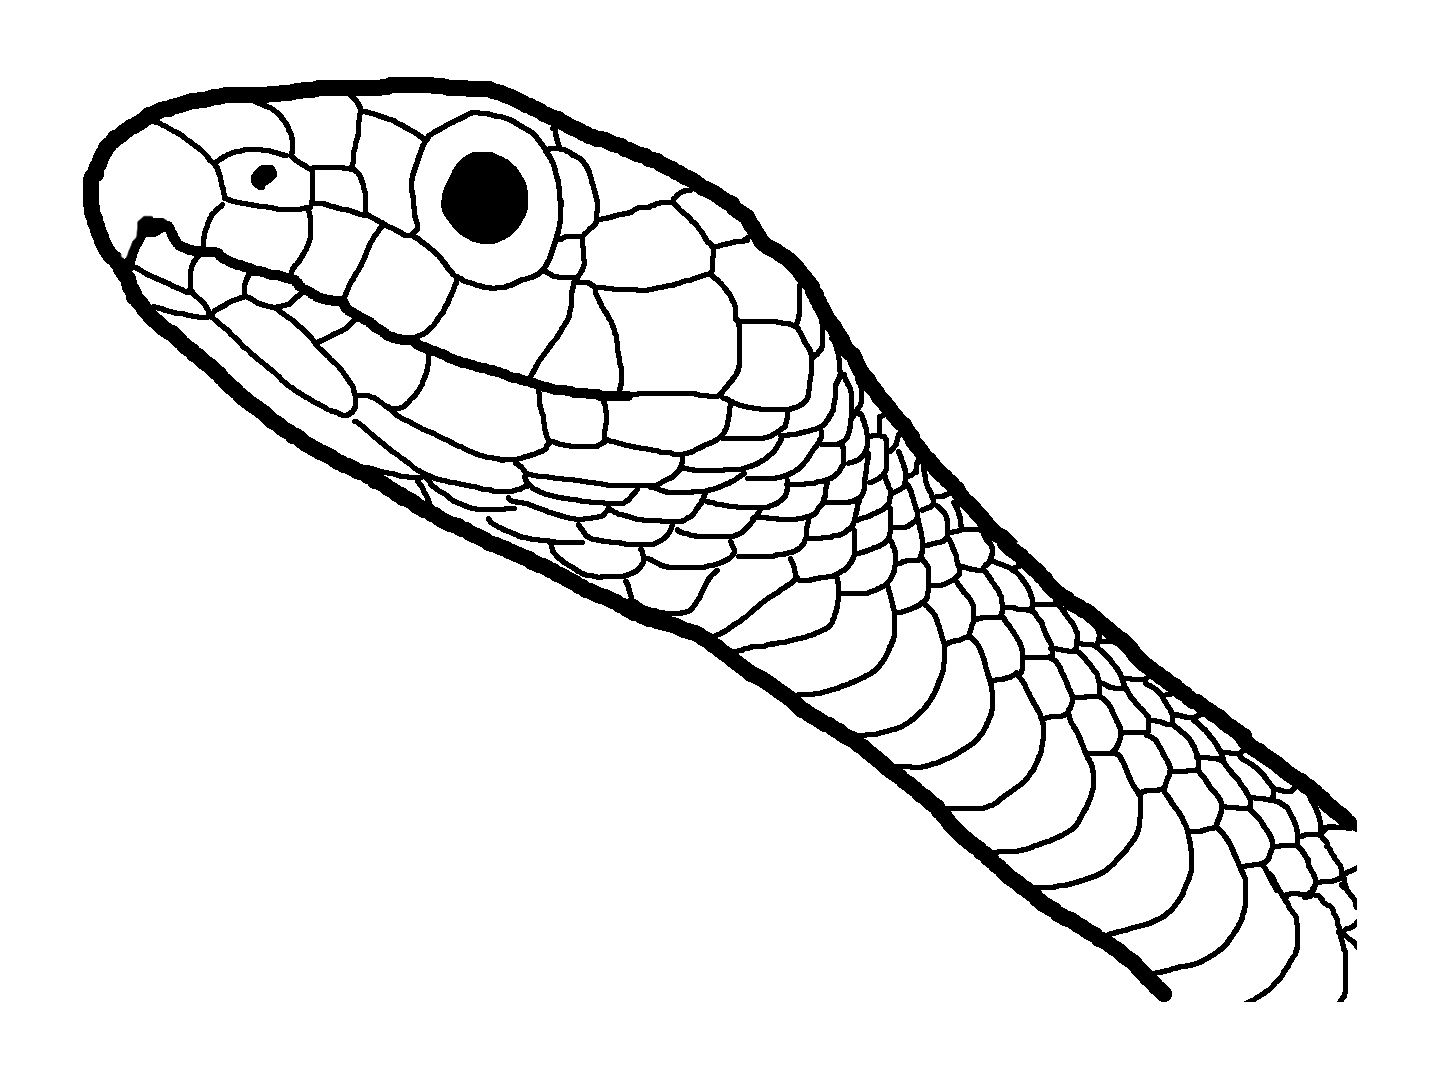 Snake Head Coloring Sheet